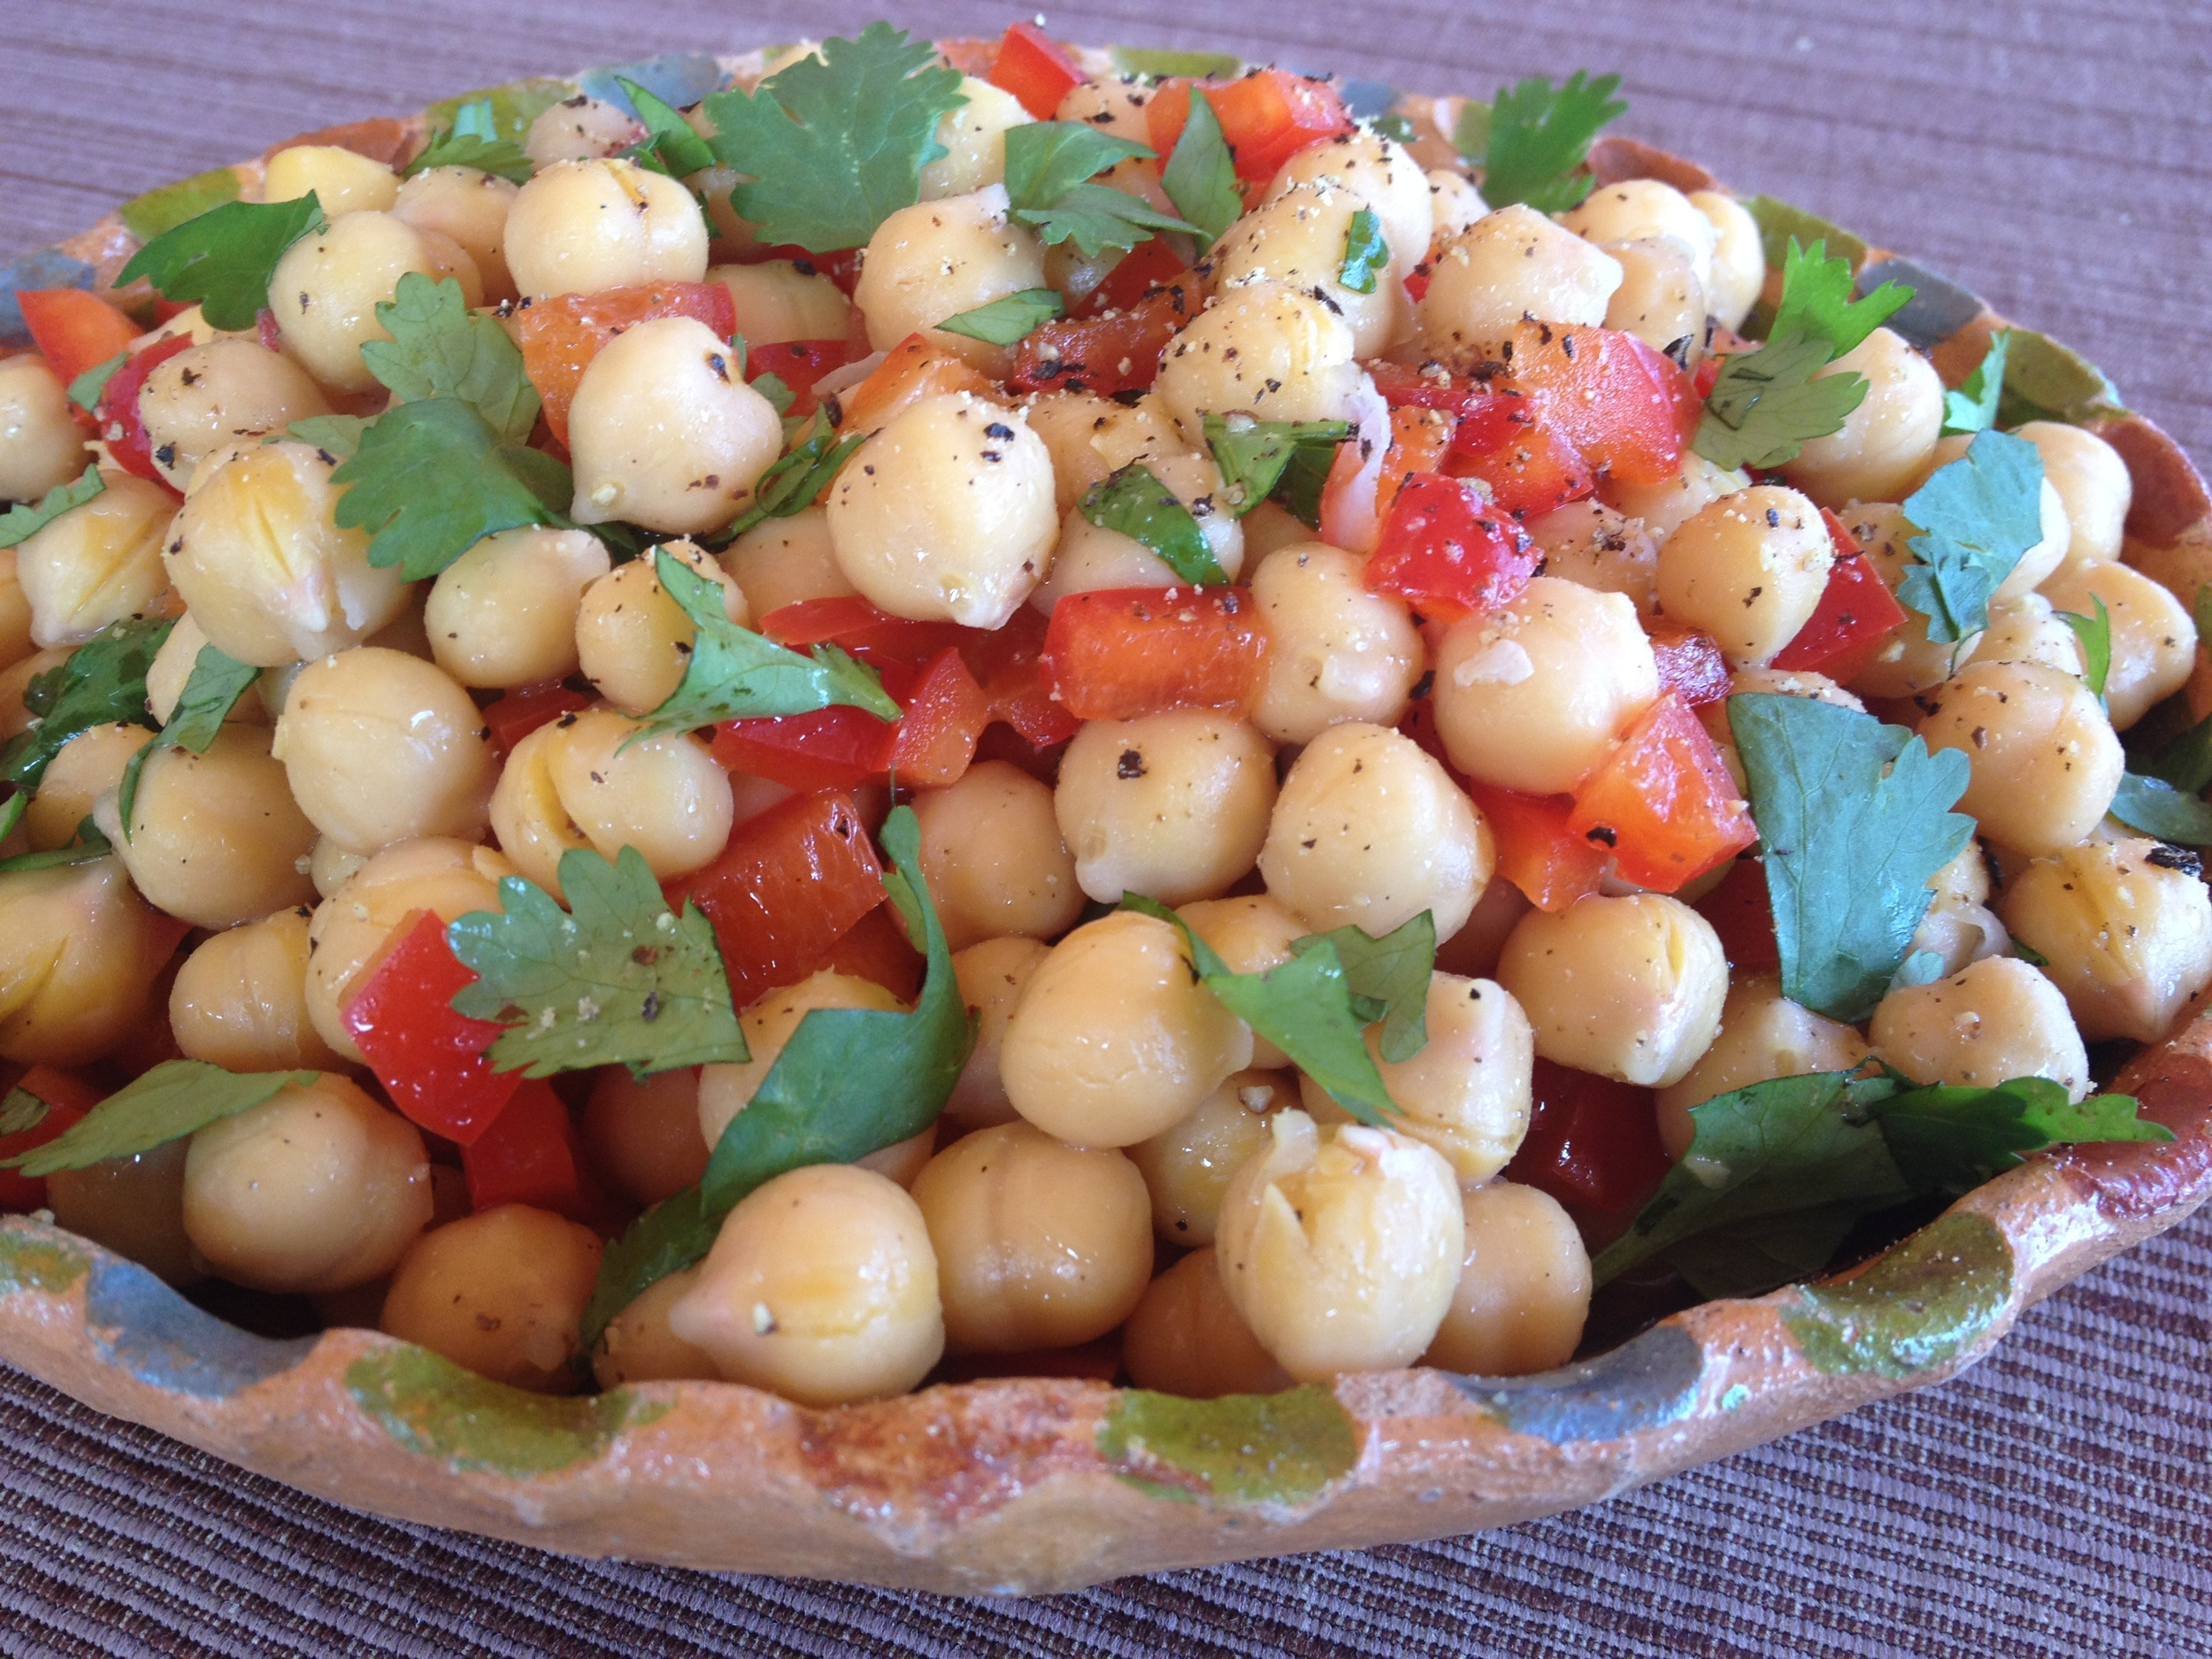 Chick Peas (Garbanzo Beans) & Coconut Oil